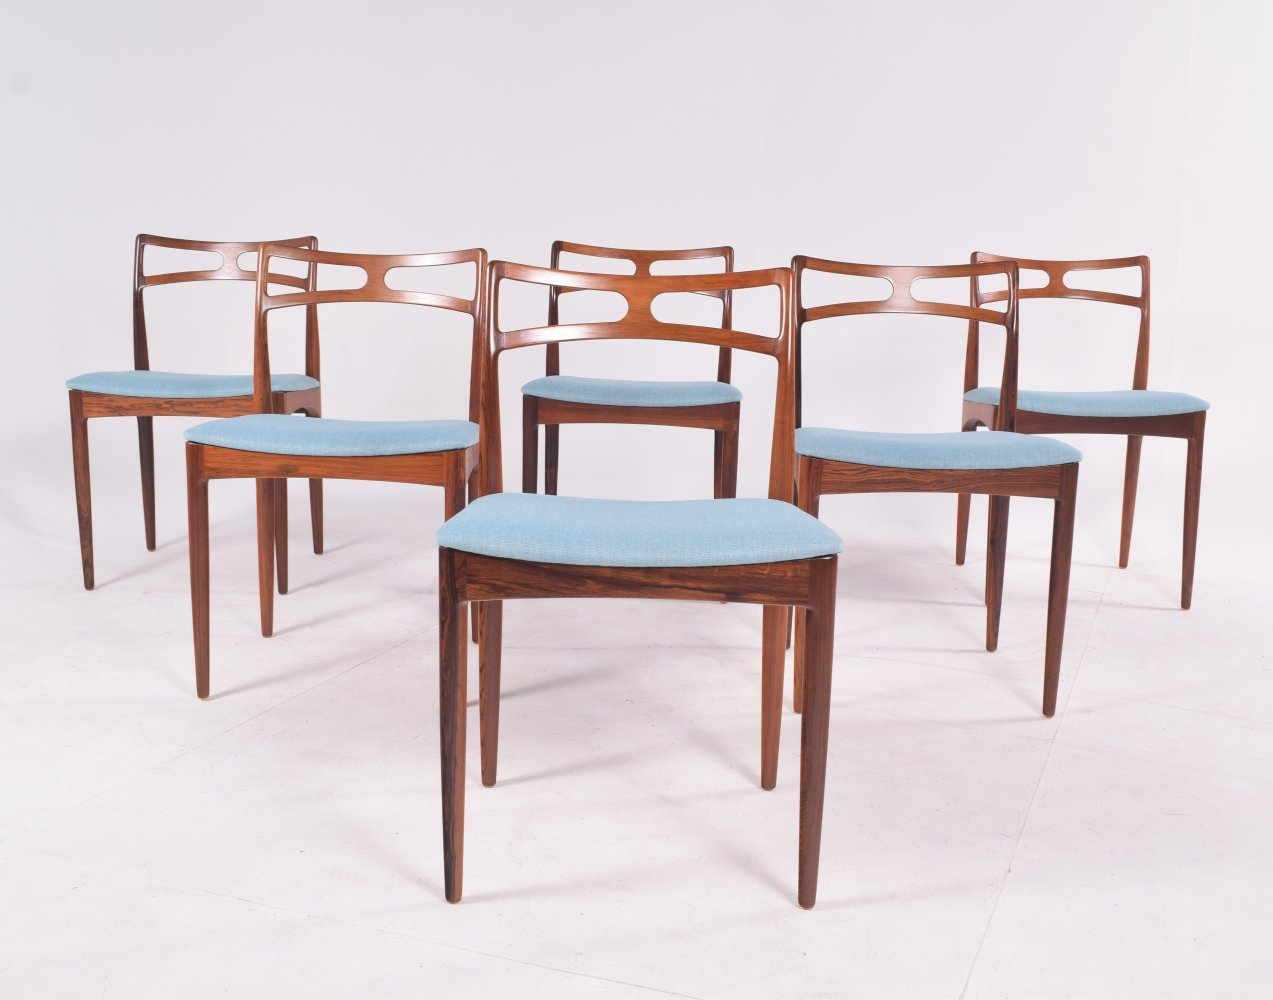 Model 94 Rosewood Dining Chairs by Johannes Andersen for Christian Linneberg